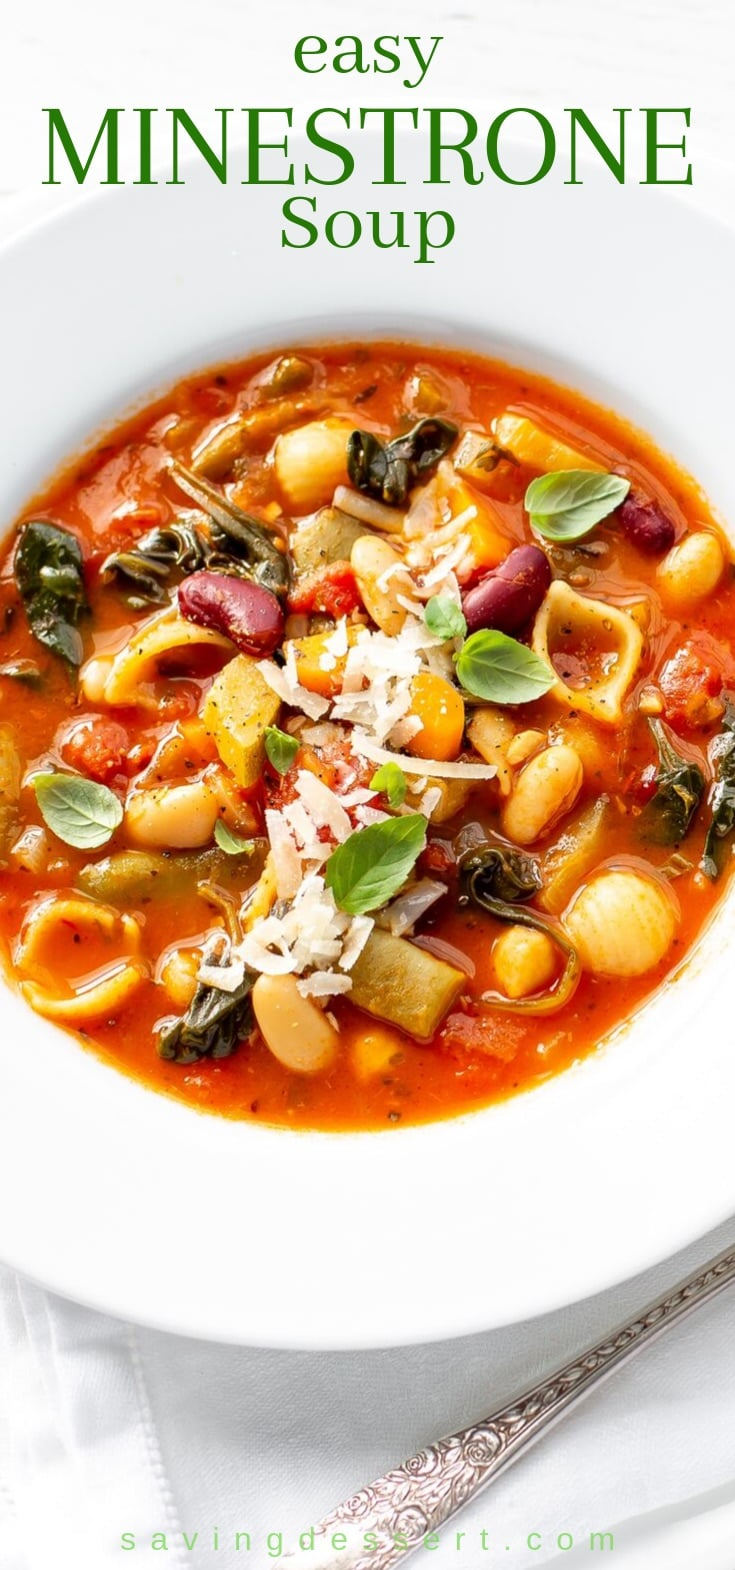 A bowl of minestrone soup with pasta and beans